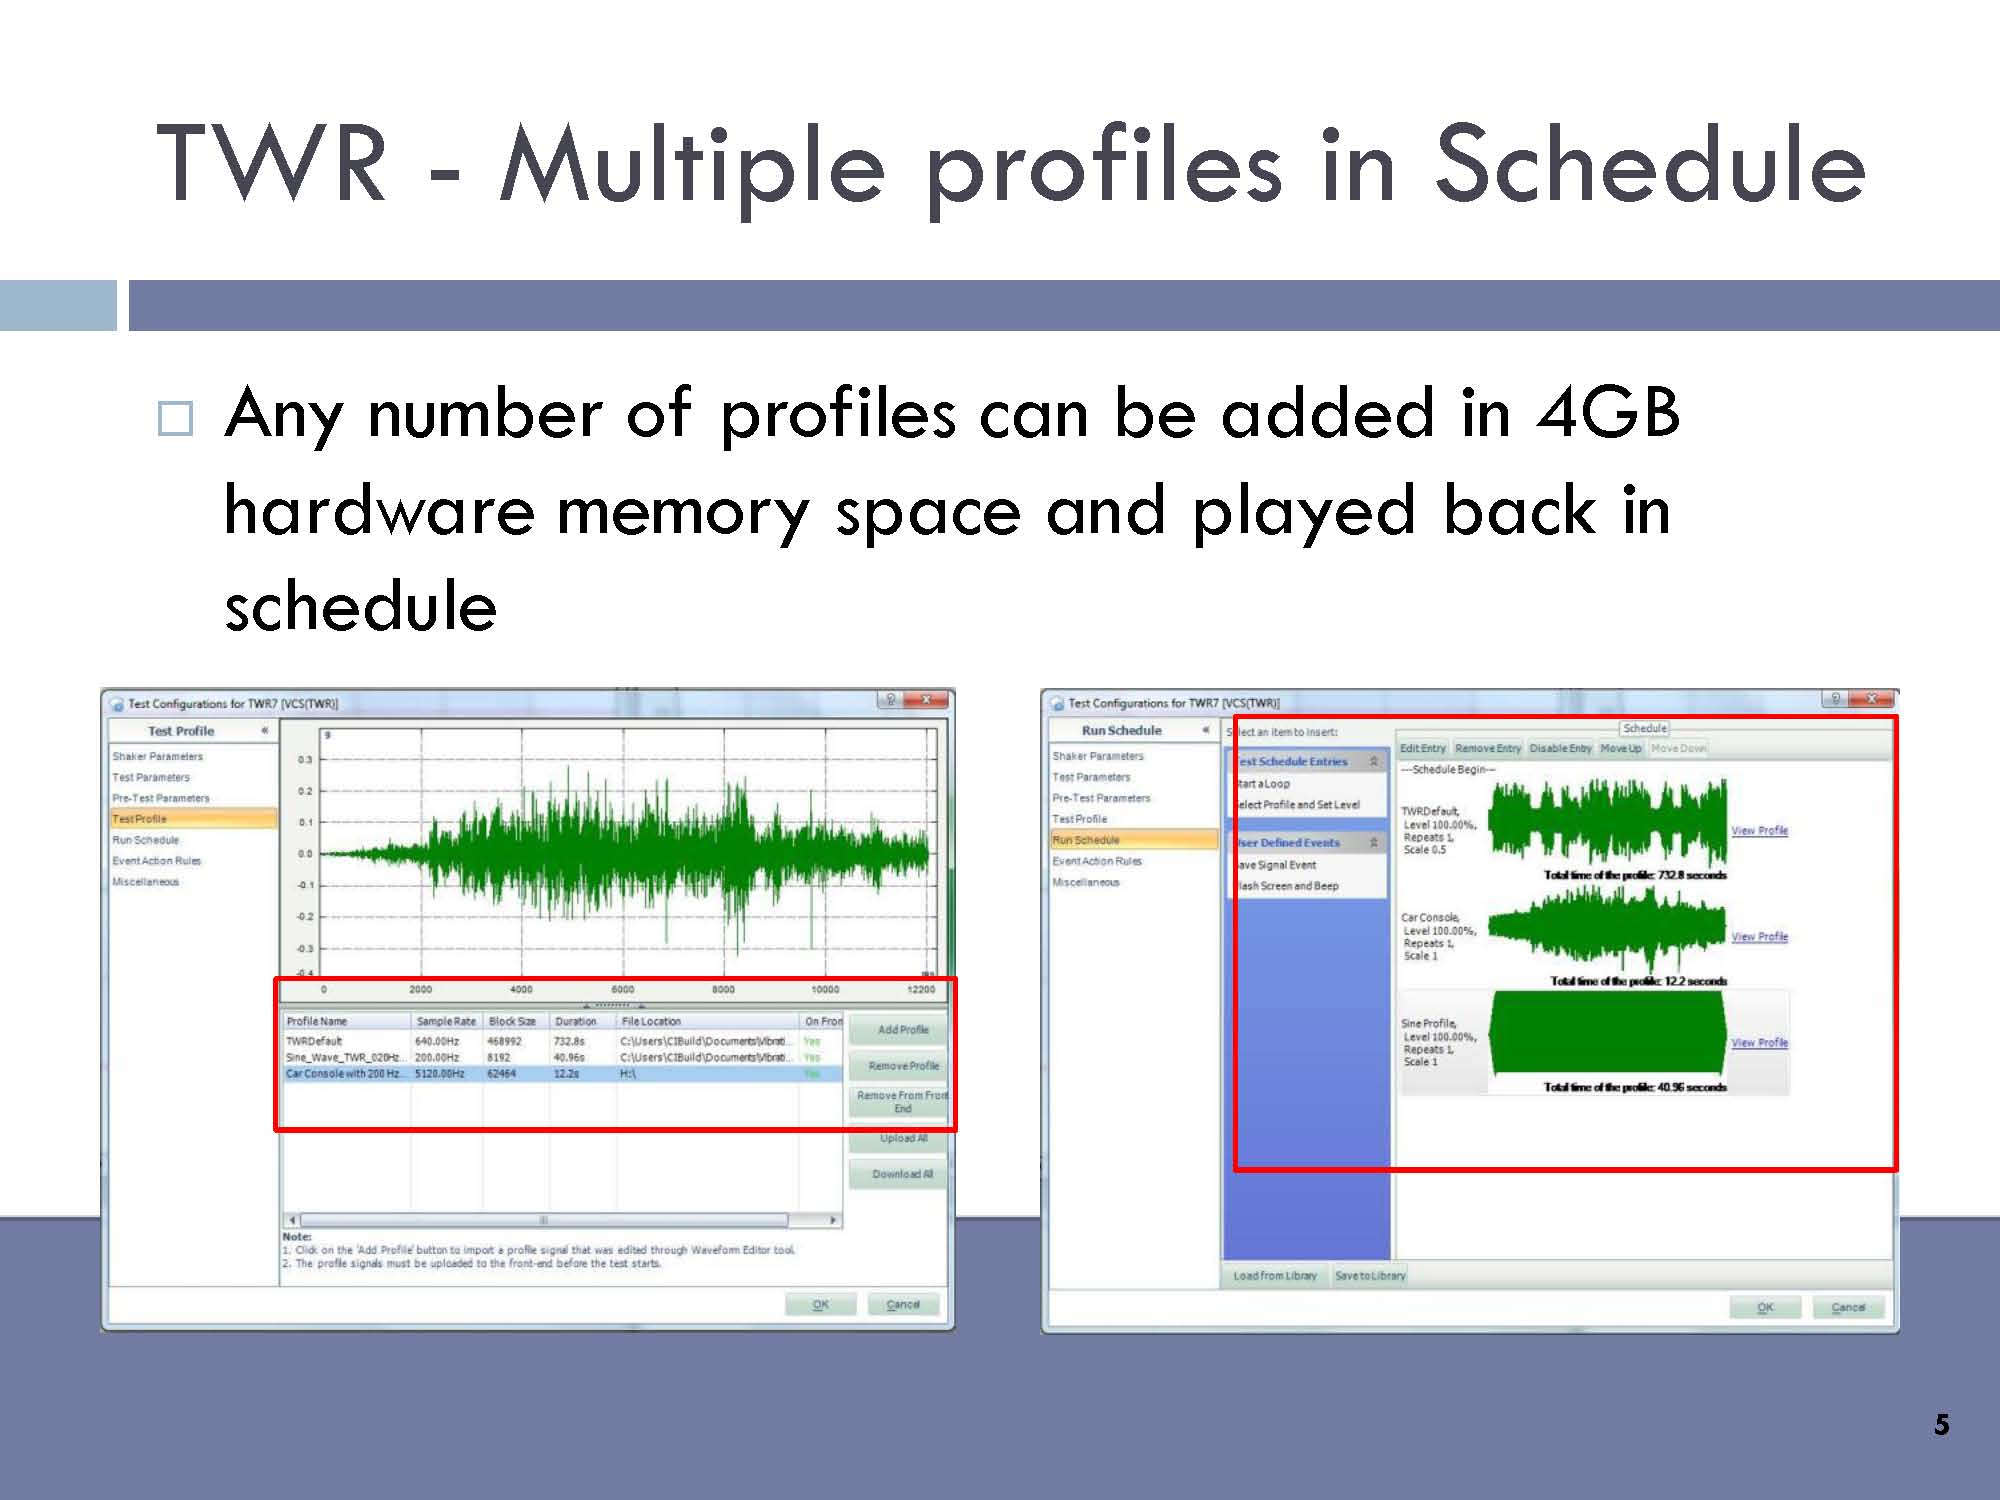 TWR - Multiple Profiles in Schedule : Any number of profiles can be added in 4GB hardware memory space and played back in schedule.